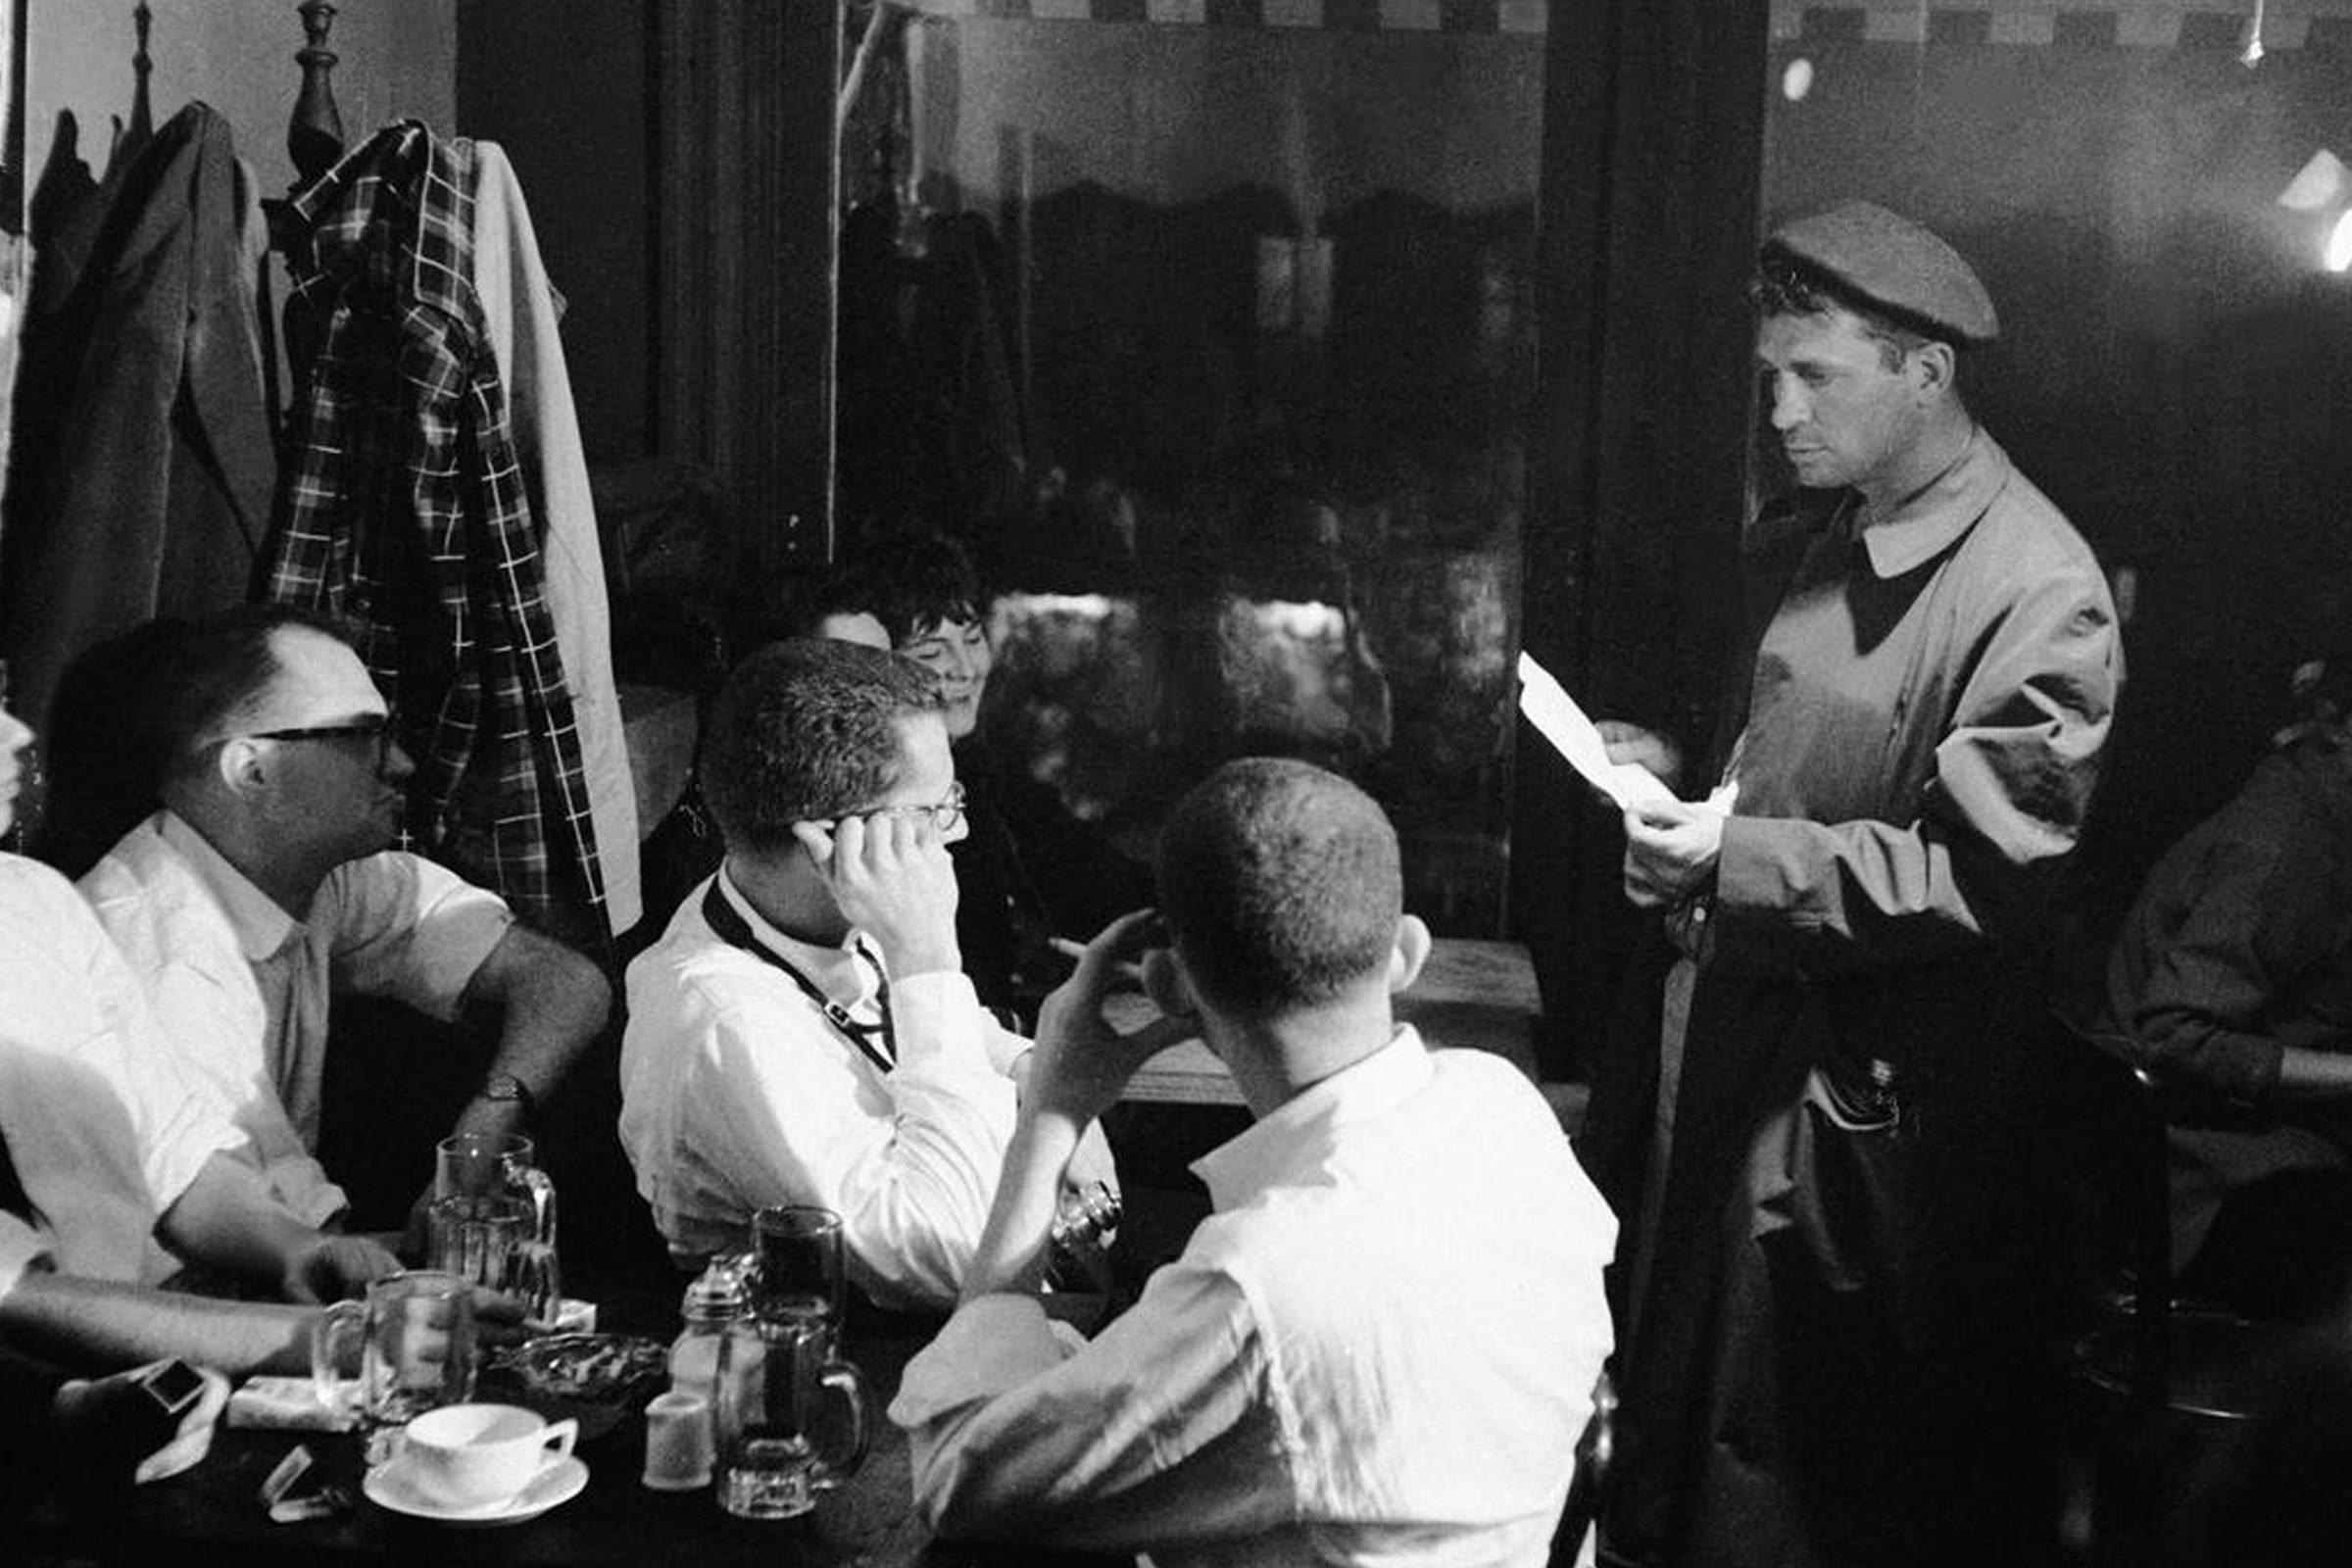 Jack Kerouac reading at the Seven Arts Cafe in New York in 1959